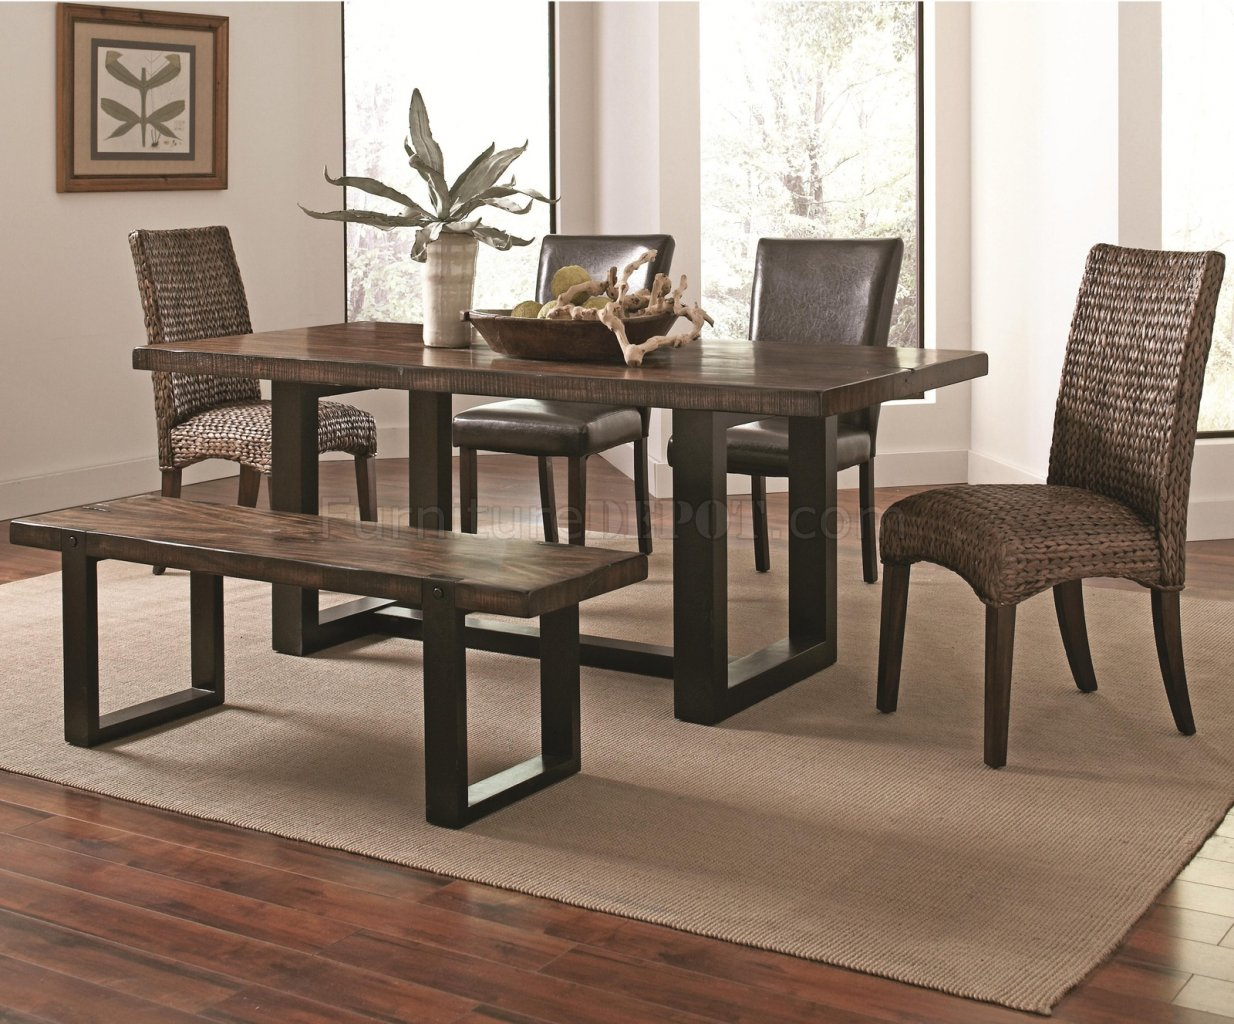 Westbrook Dining Table 121641 Coaster w/Optional Wooven Chairs